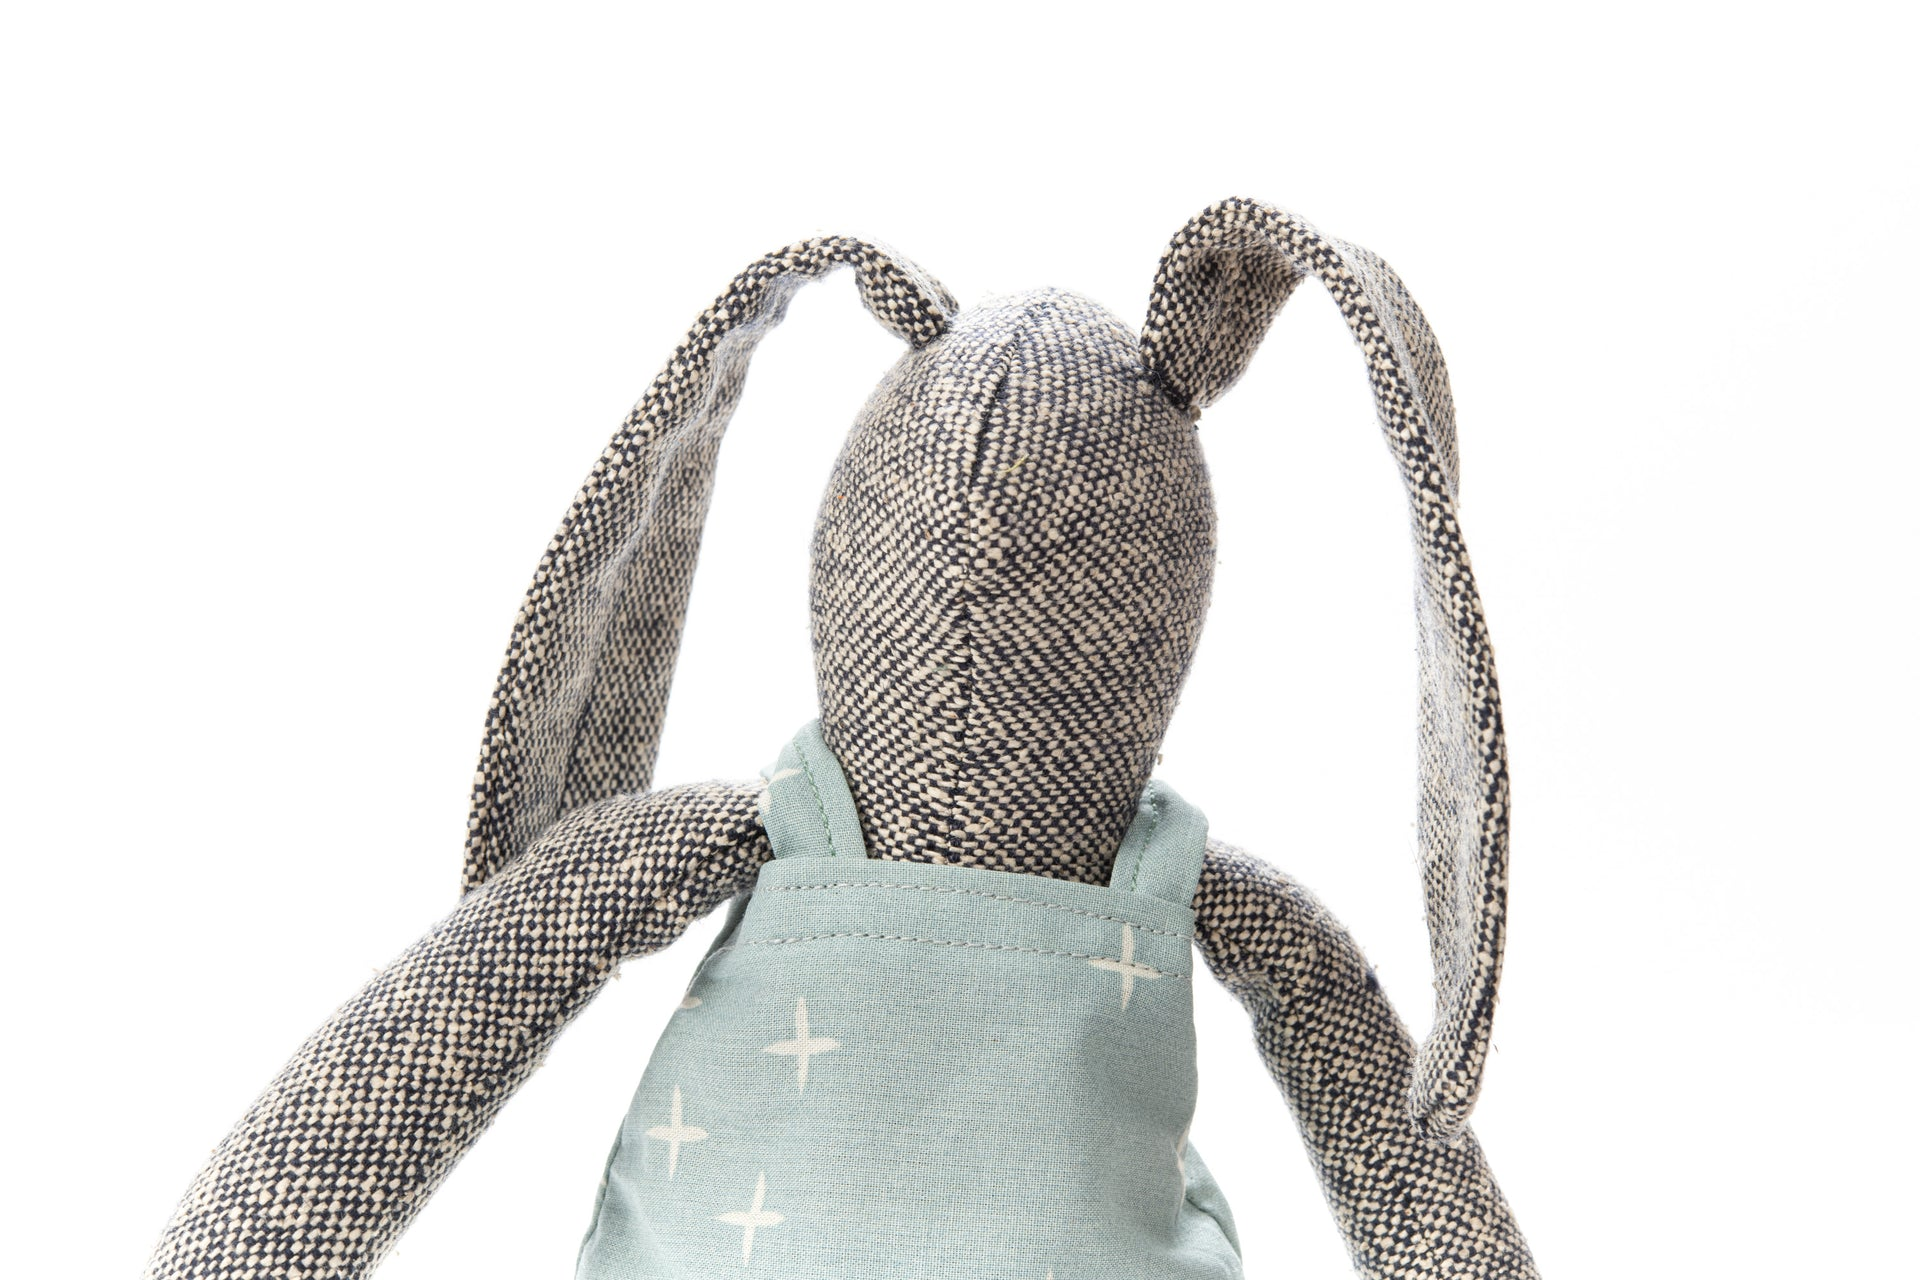 Plush bunny toy Bunny rag doll Handmade rabbit doll Stuffed toy Fabric bunny Doll Woven silk doll Softie Cuddling doll Baby girl gift